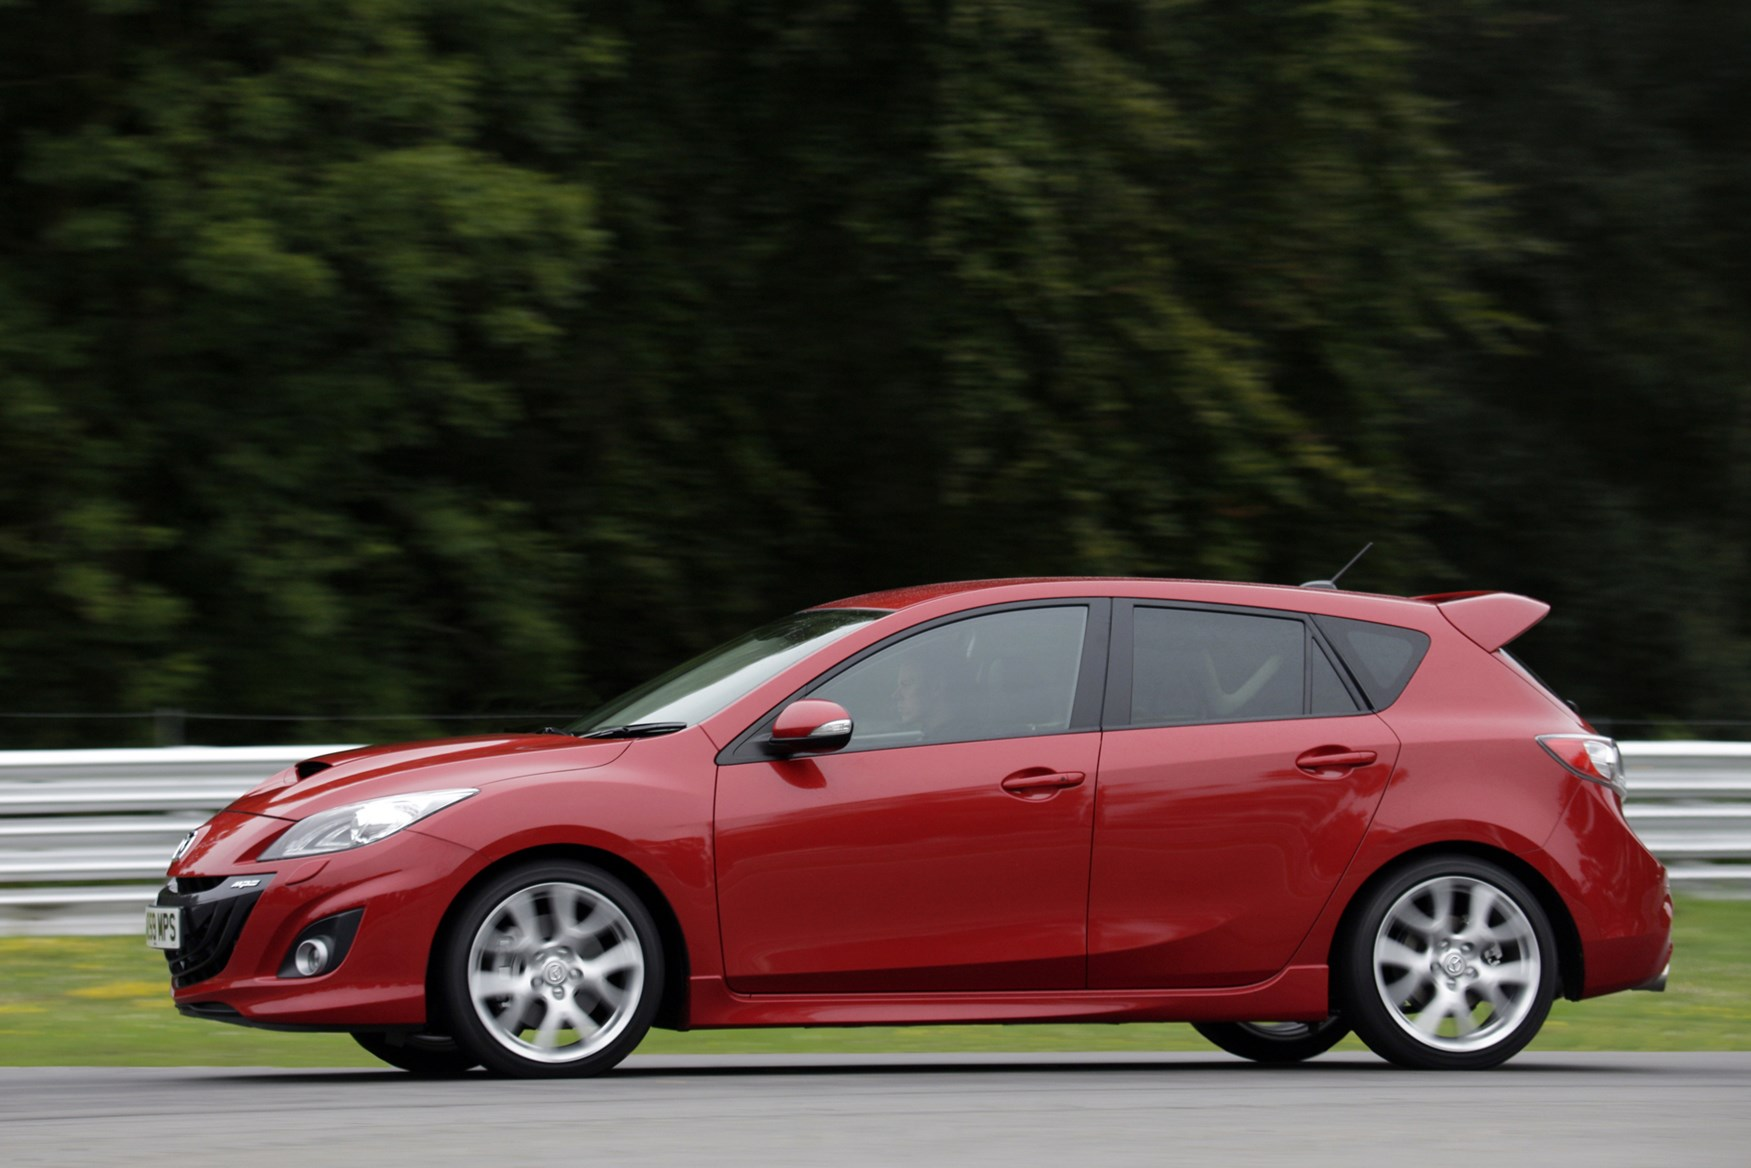 Used Mazda 3 MPS (2009 - 2013) Practicality | Parkers